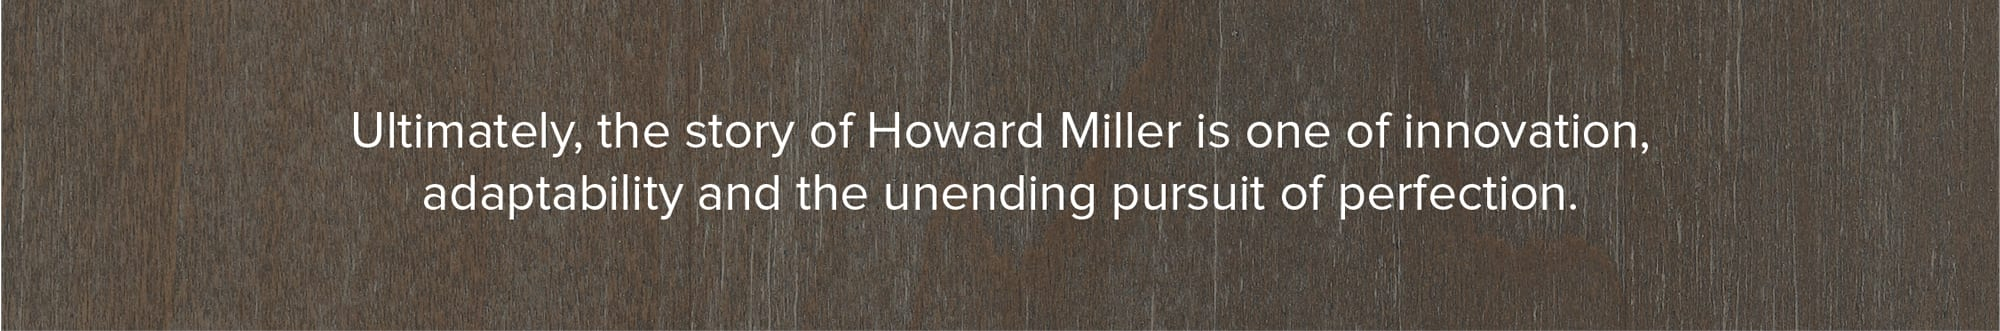 Howard Miller's Unending Pursuit of Perfection